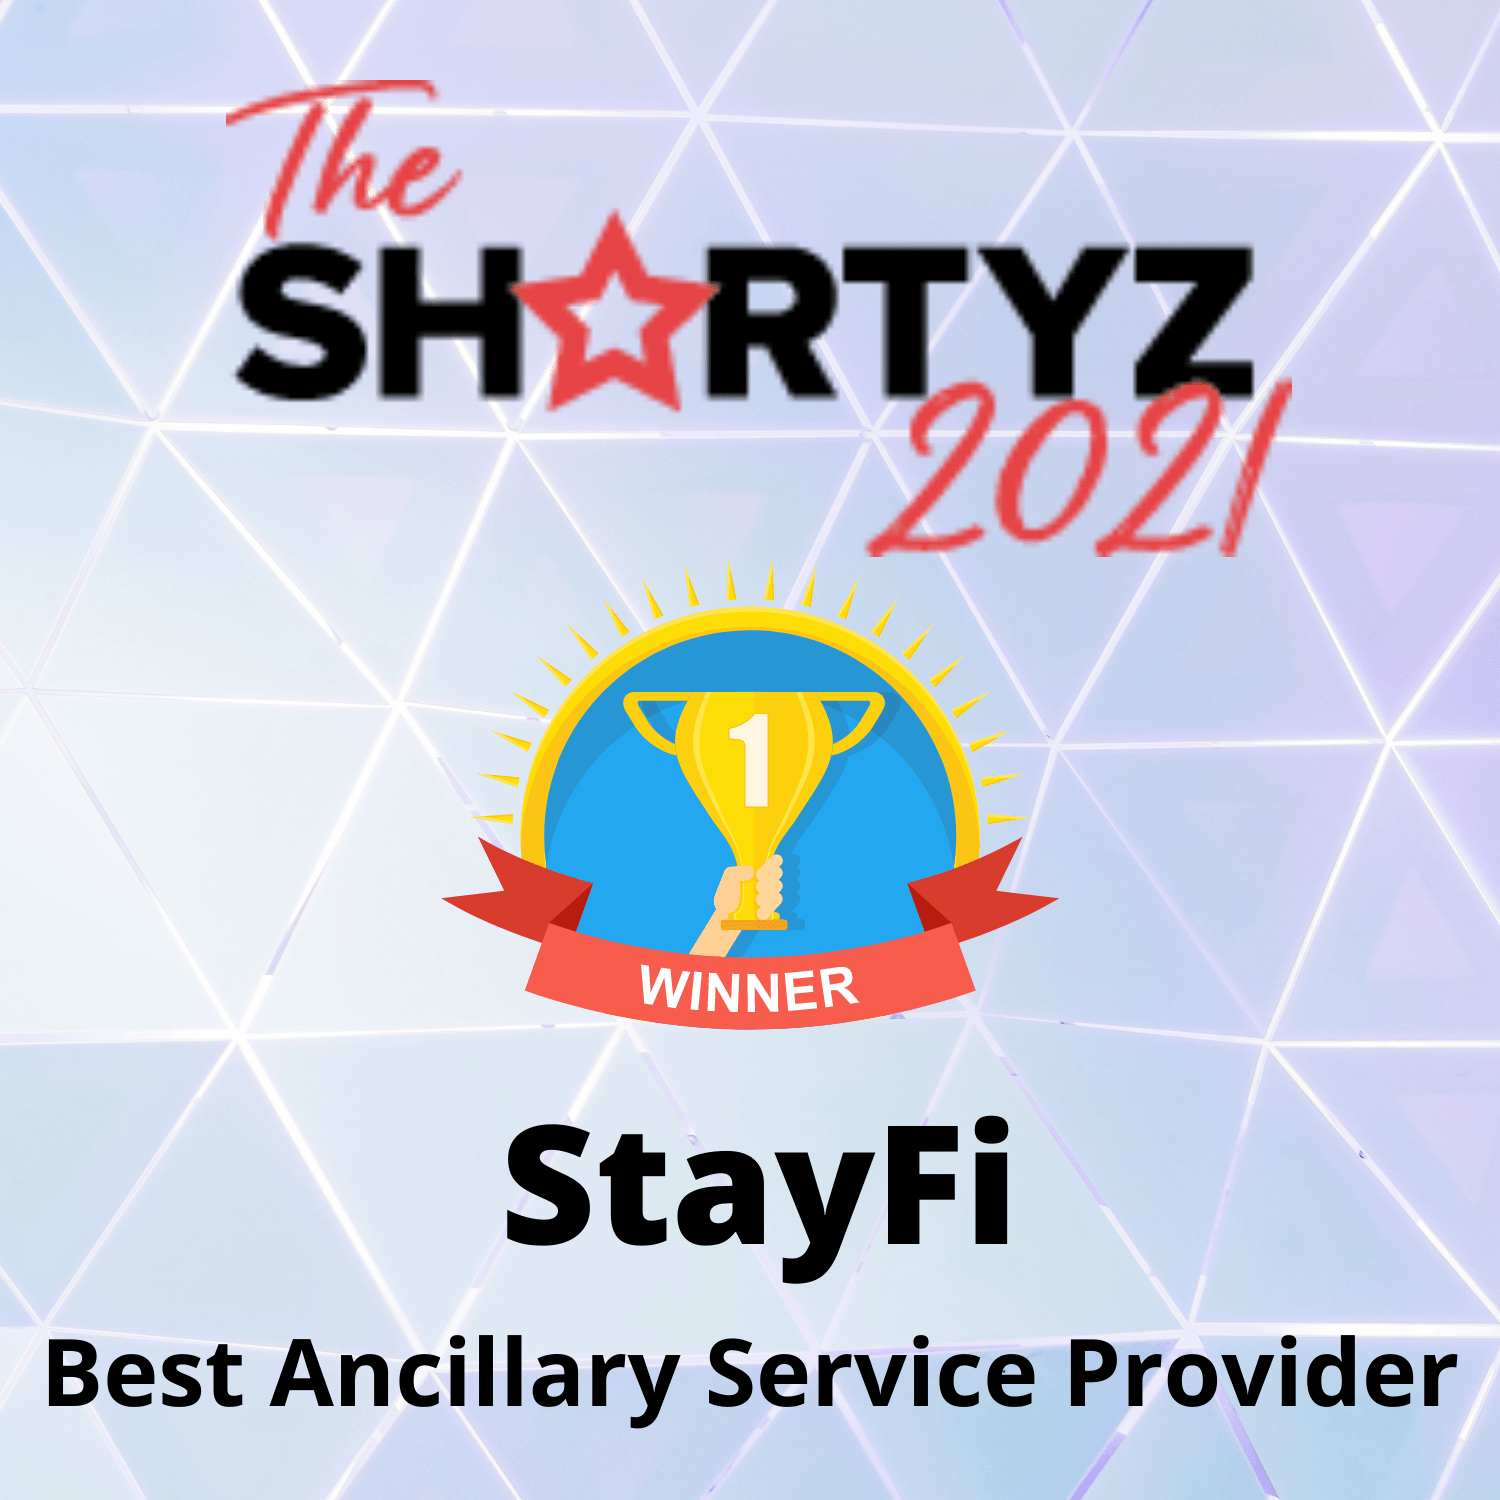 StayFi Wins The Shortyz 2021